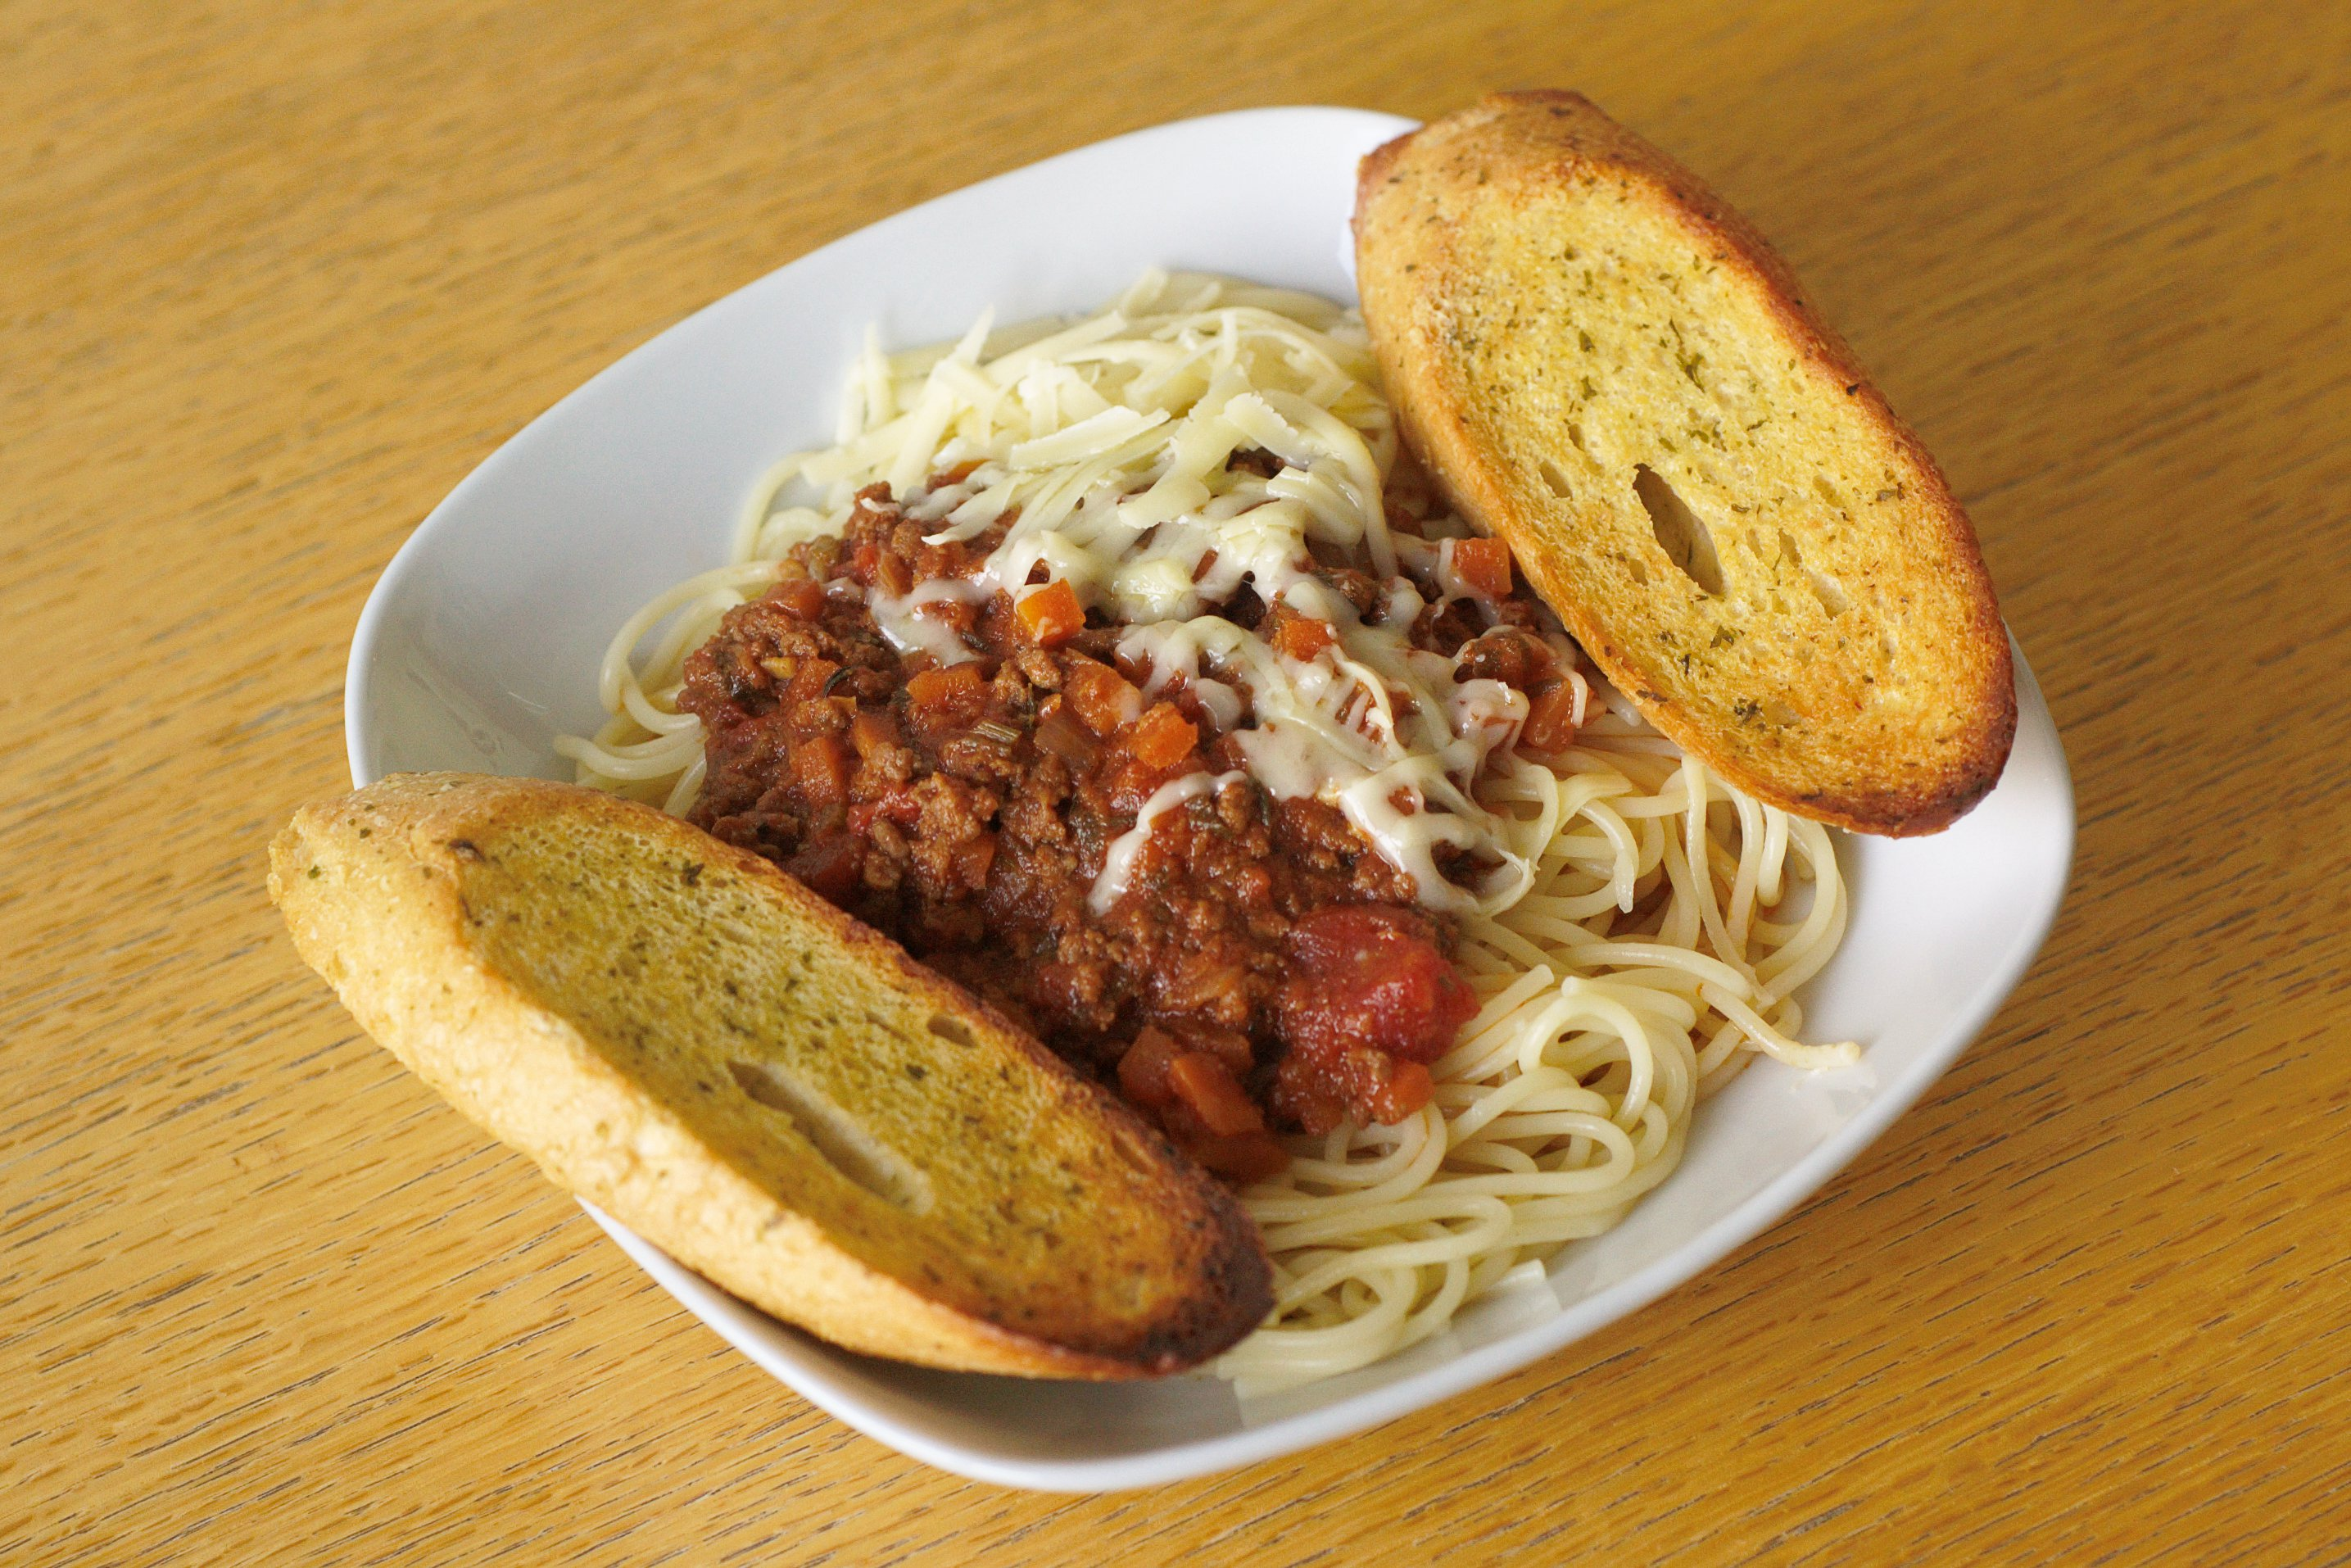 Spaghetti with bolognese sauce and garlic bread